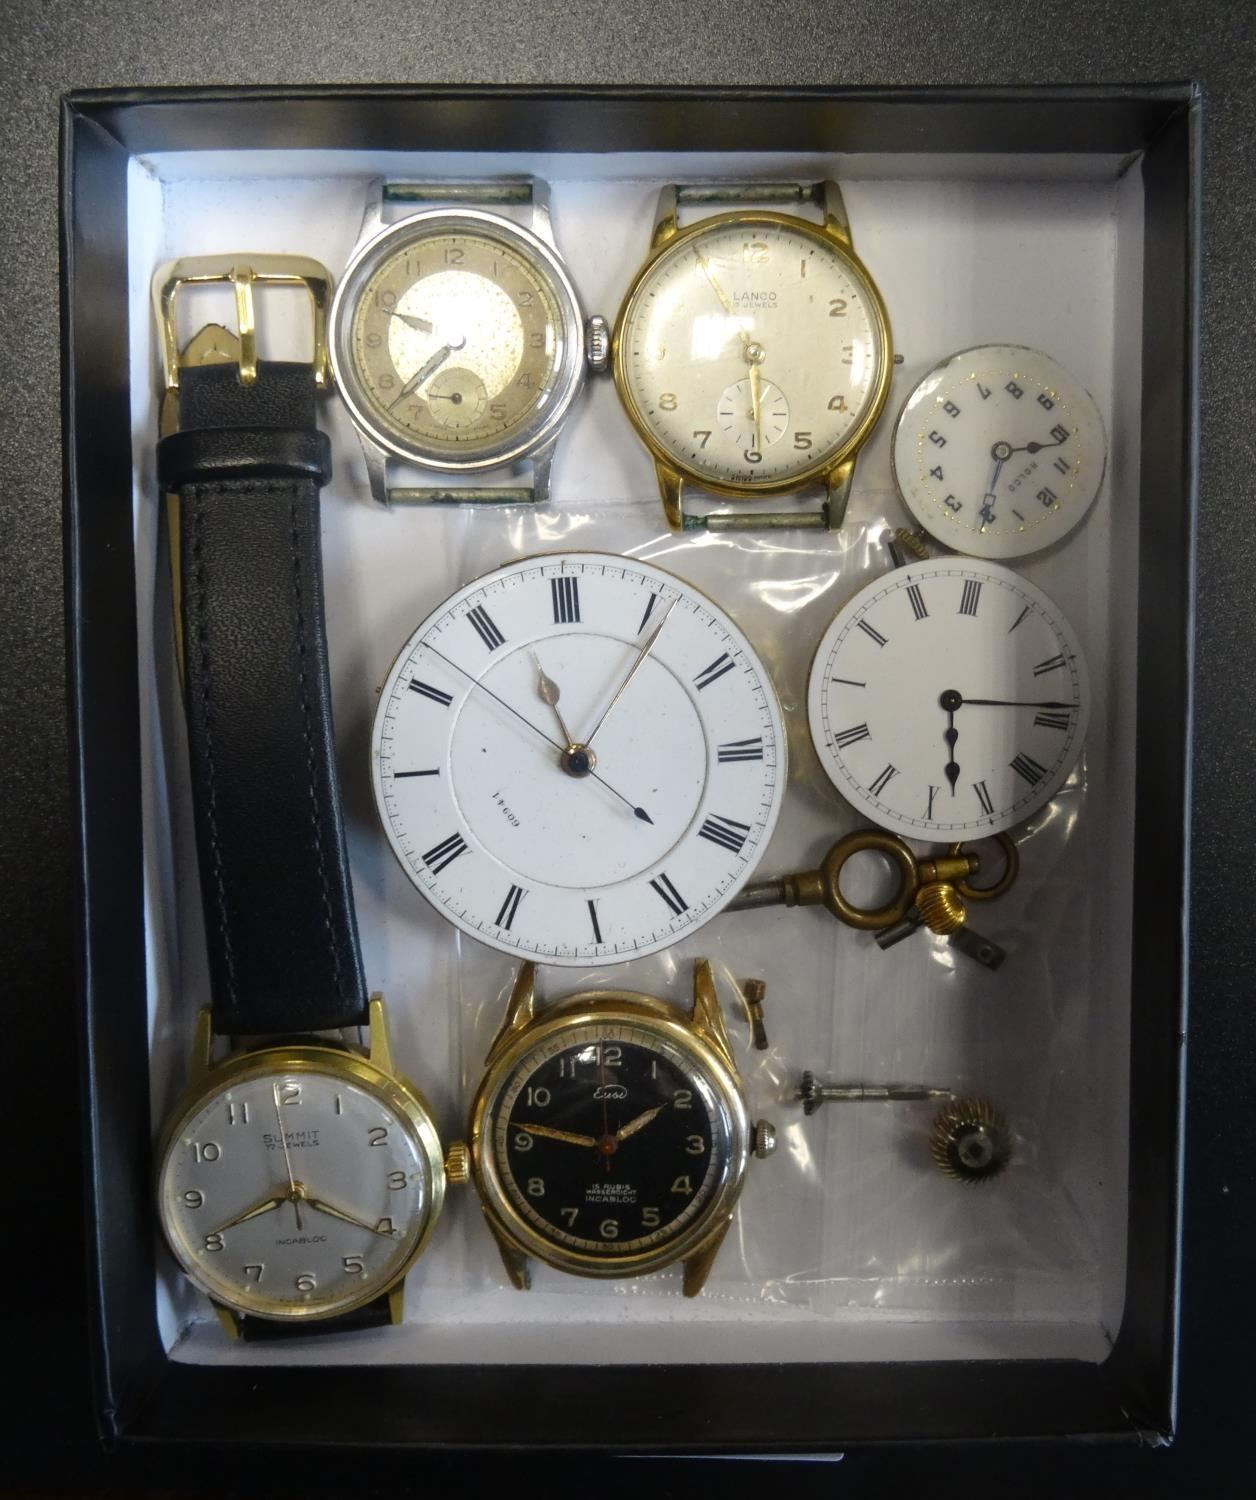 Lot 37 - SELECTION OF VINTAGE WATCHES, WATCH MOVEMENTS AND PARTS including a watch movement and dial, the